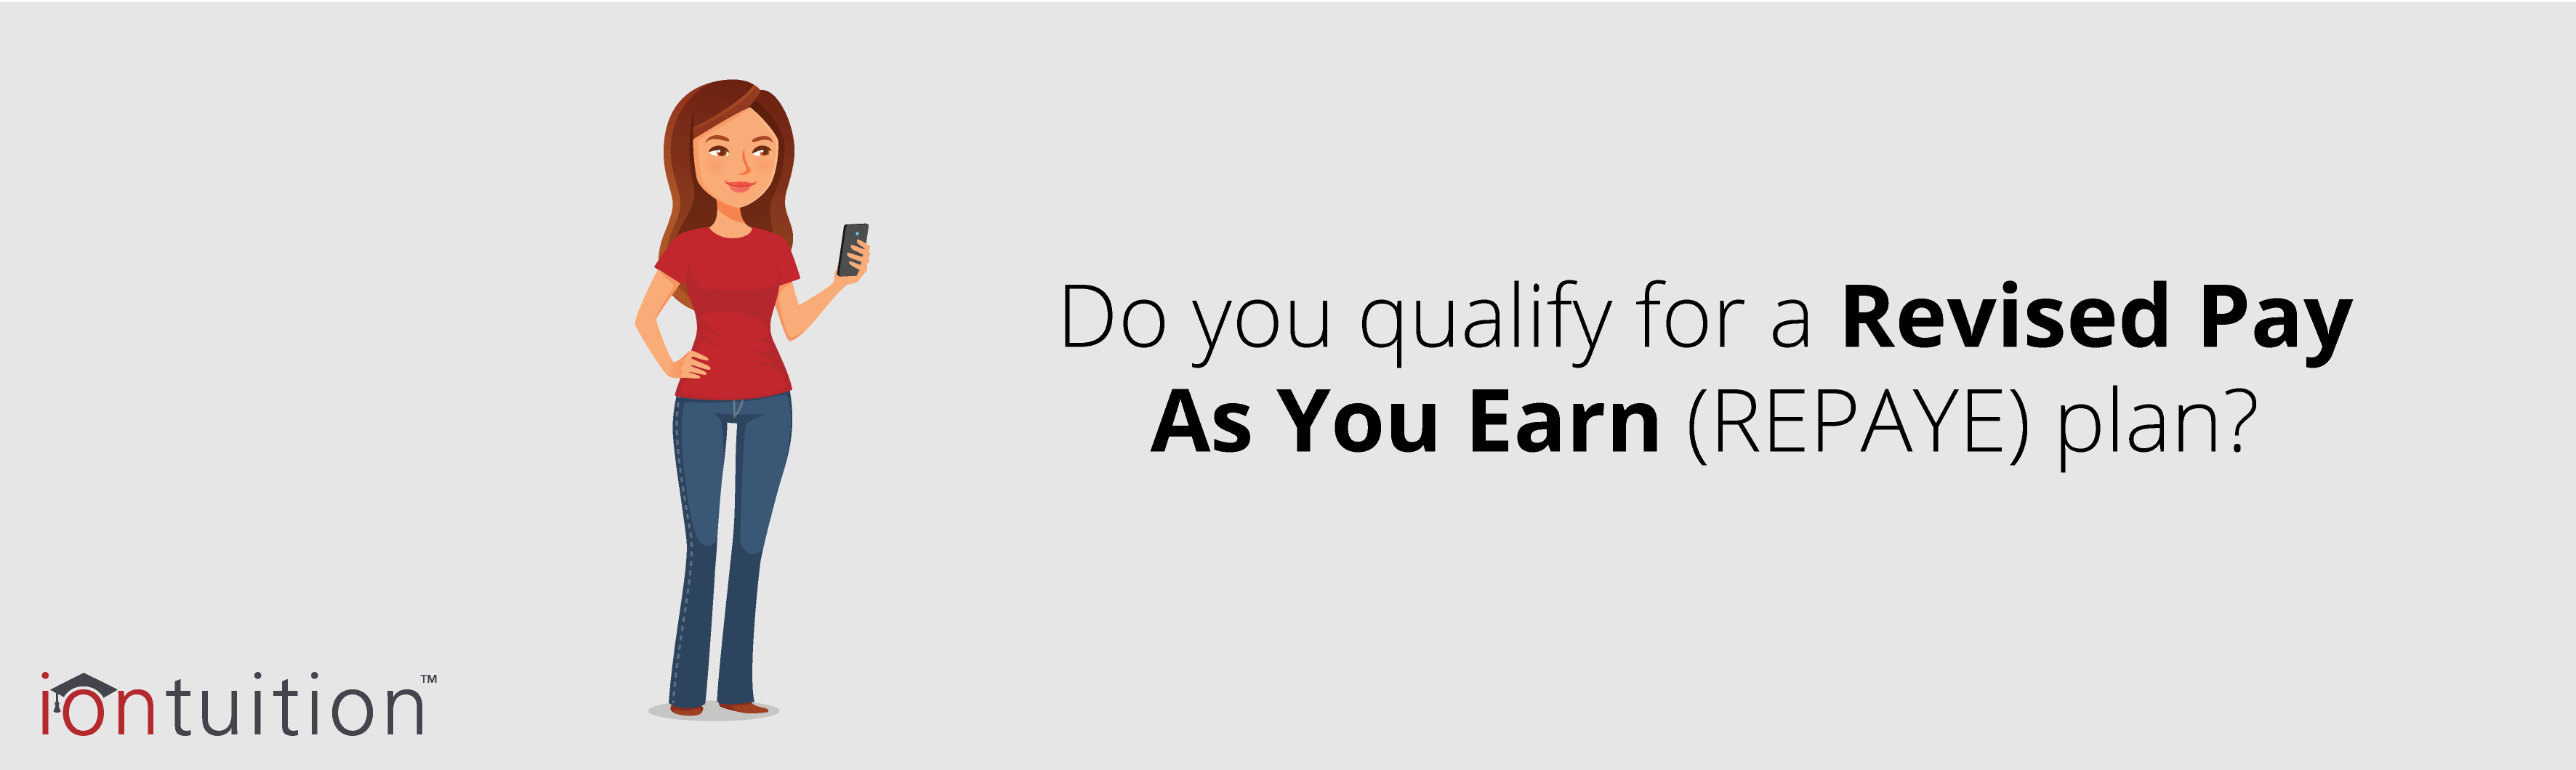 How Does Revised Pay As You Earn (REPAYE) Work?